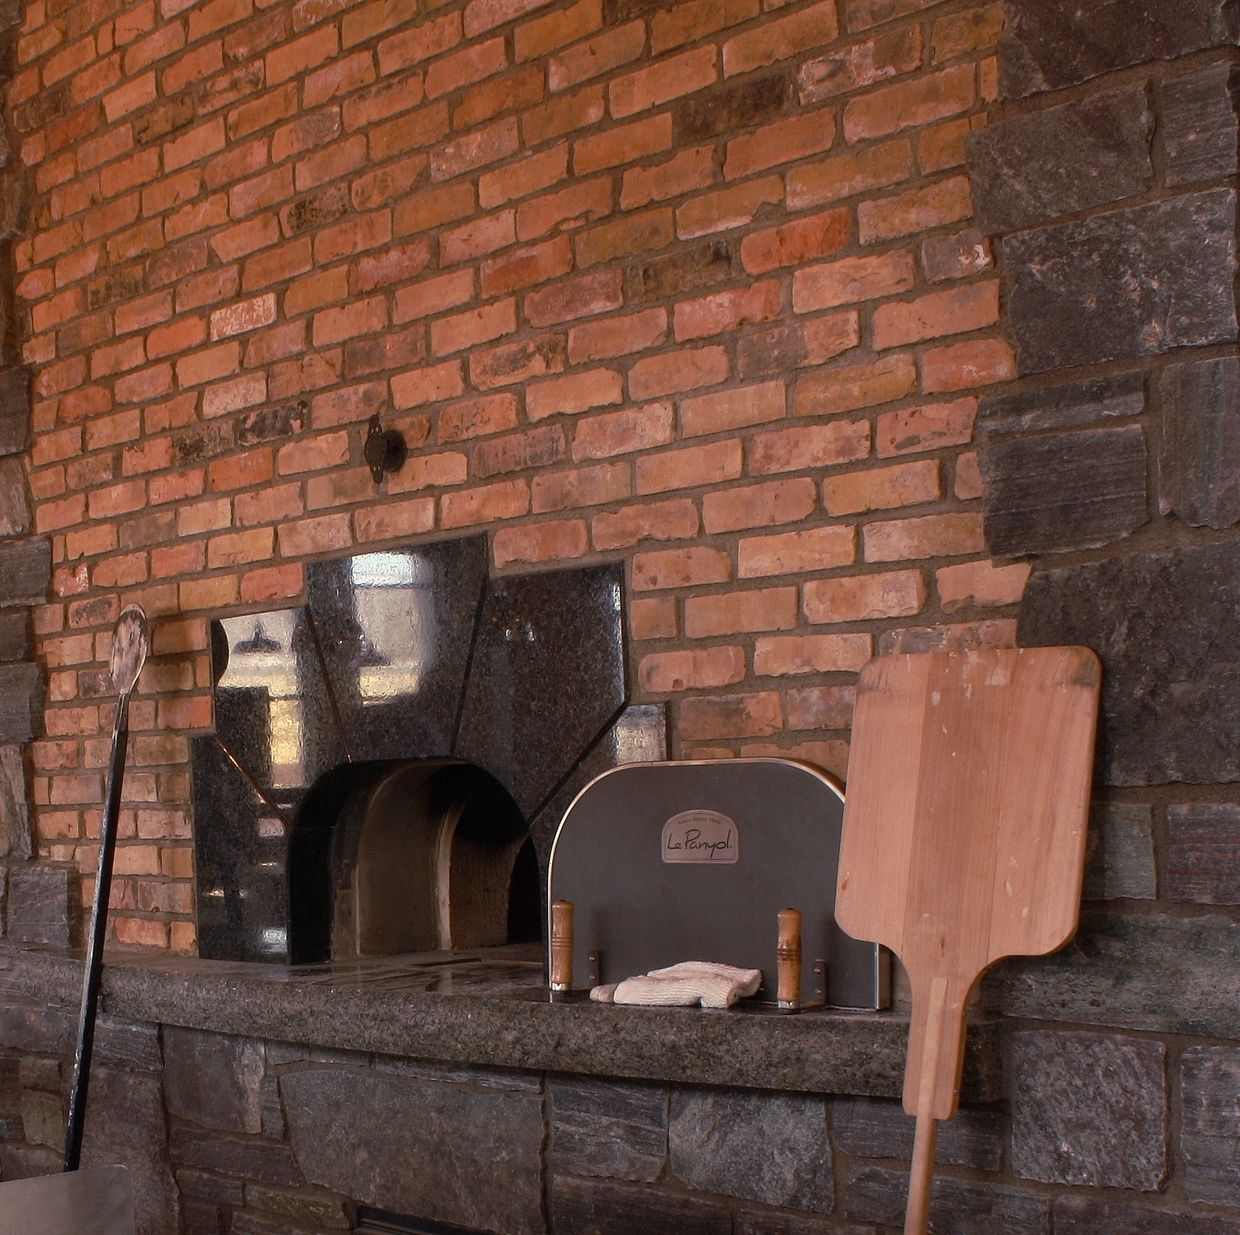 One of two twin Le Panyol ovens imported from France and built by Beaumont Stoneworks.